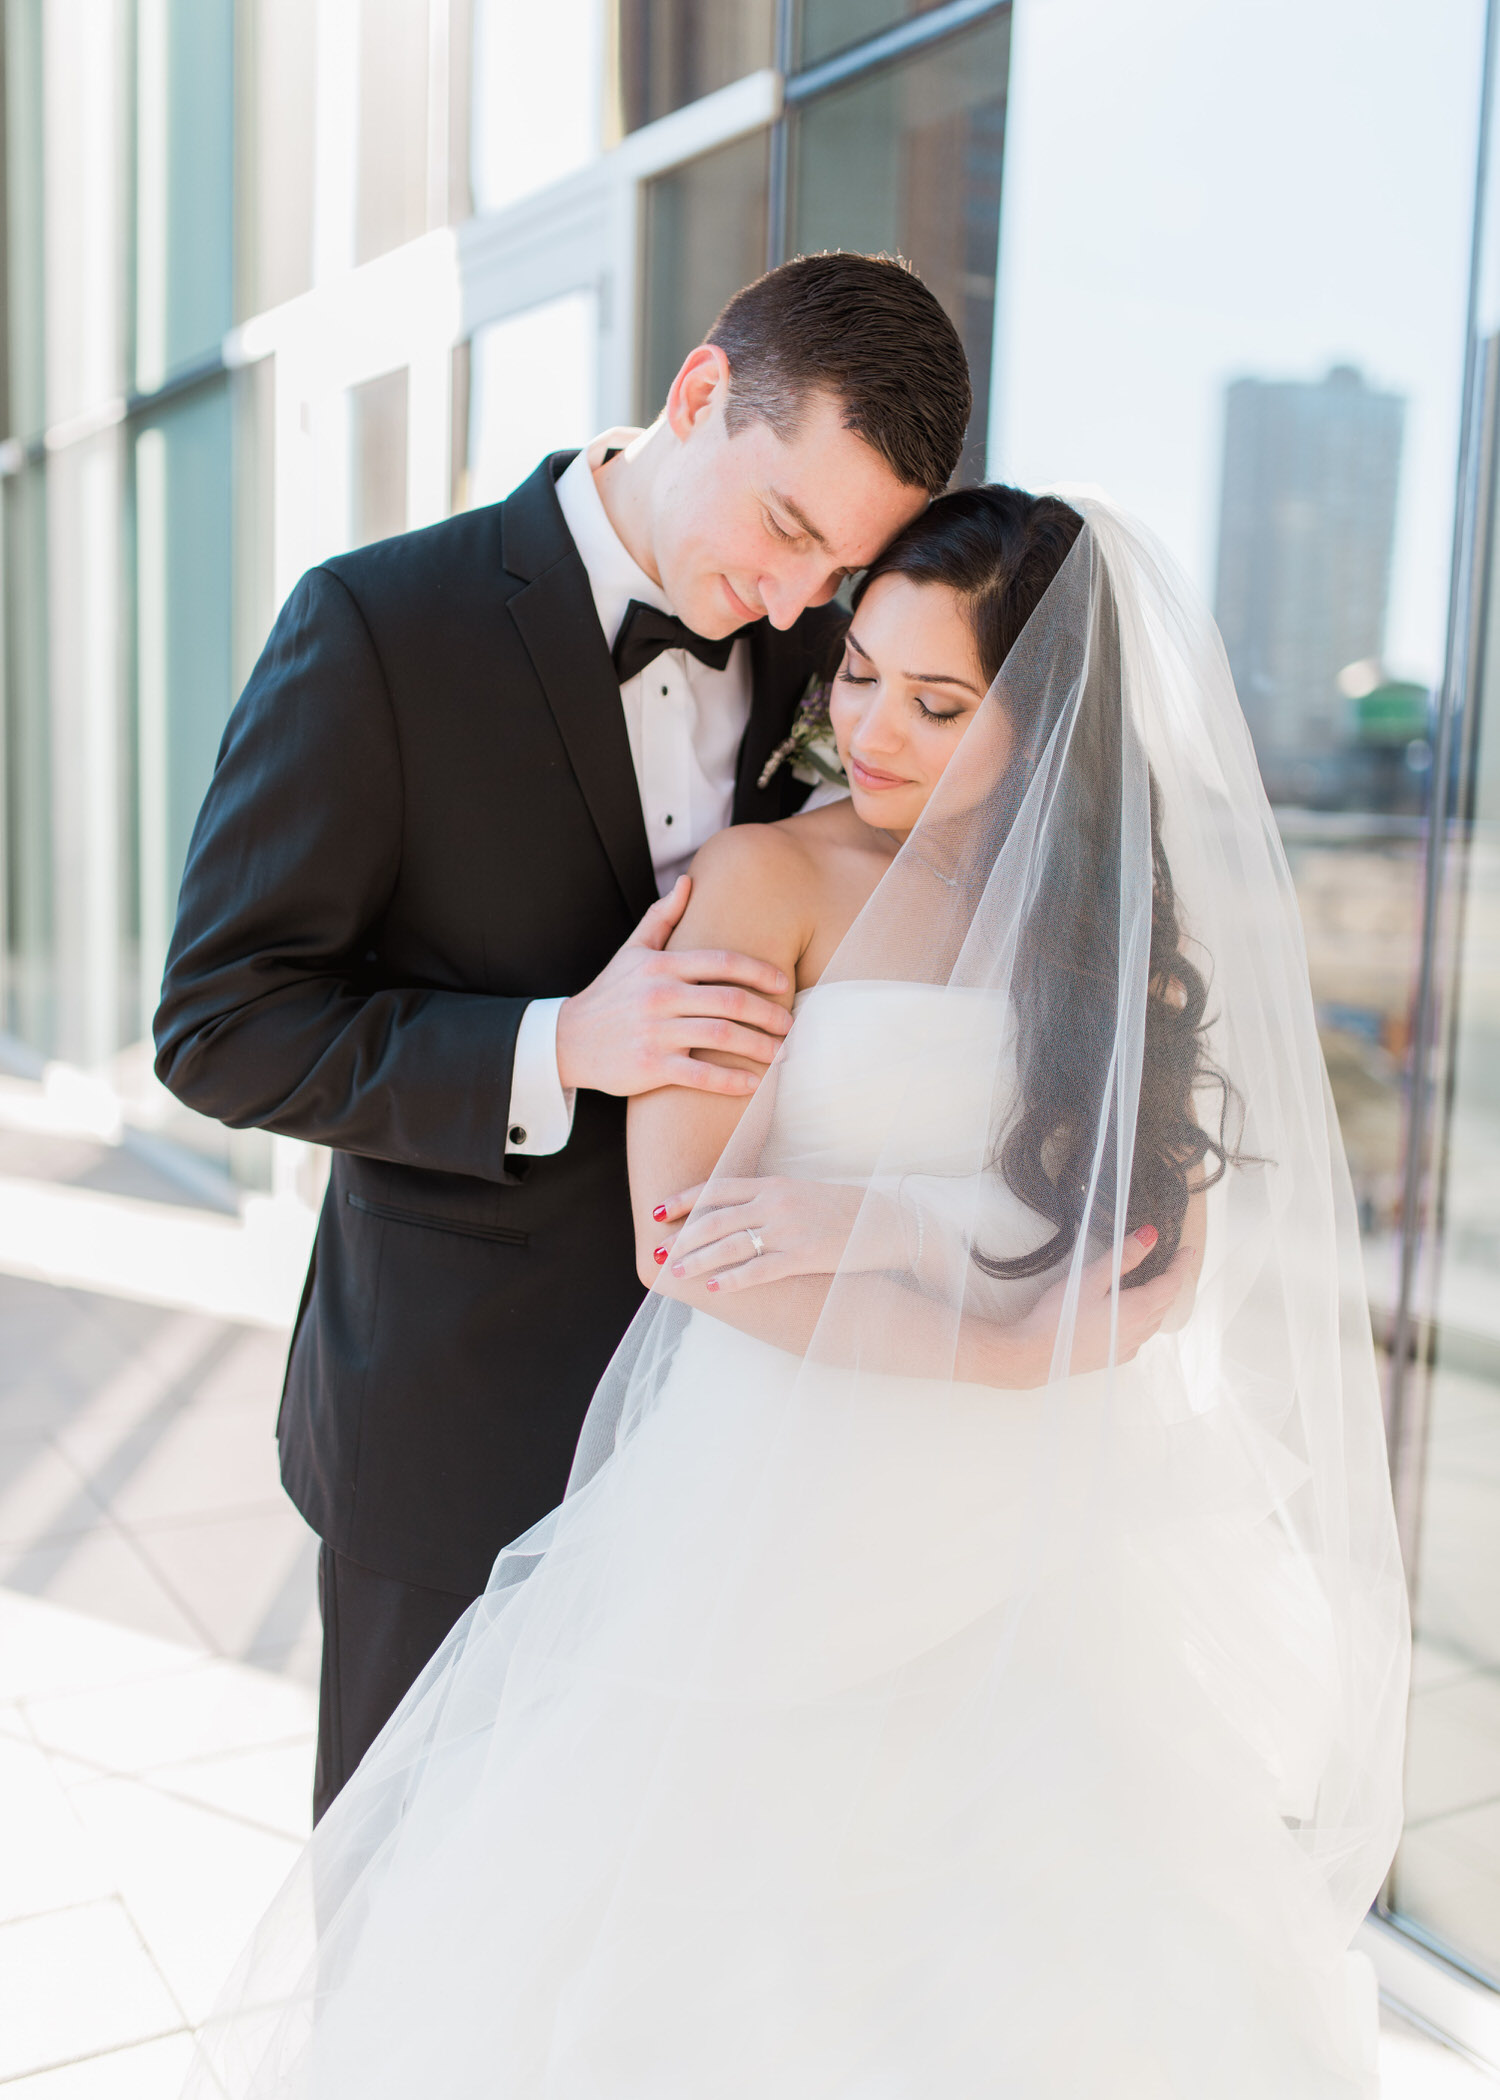 Bride and groom share a moment during elopement at Toronto Delta hotel